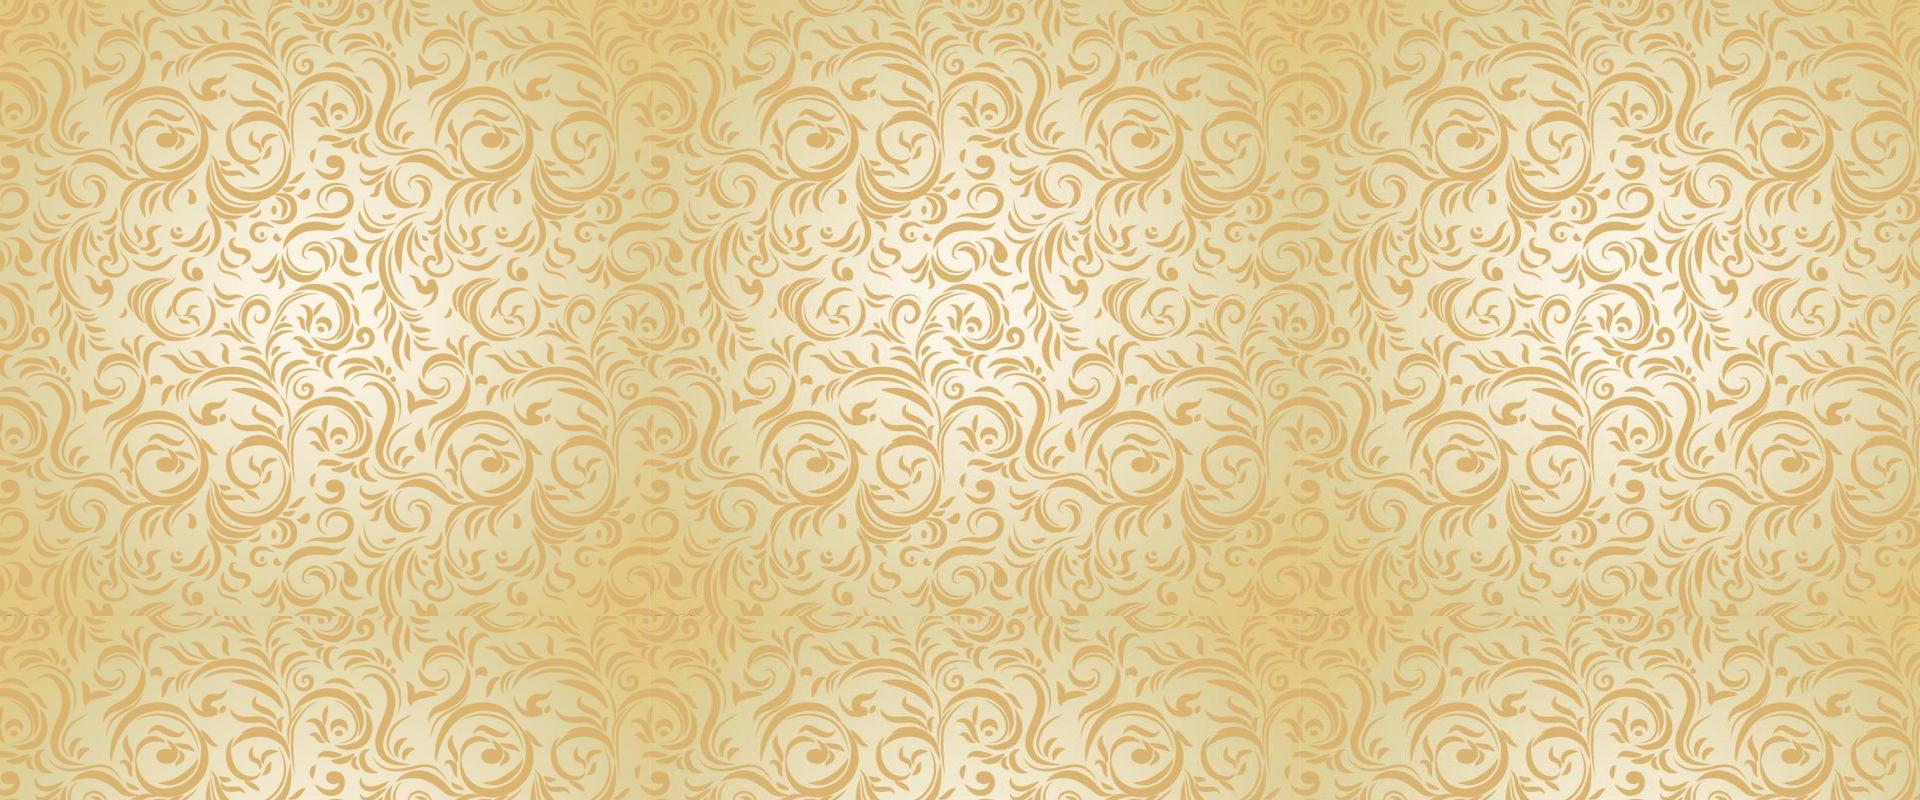 golden european pattern background material texture poster